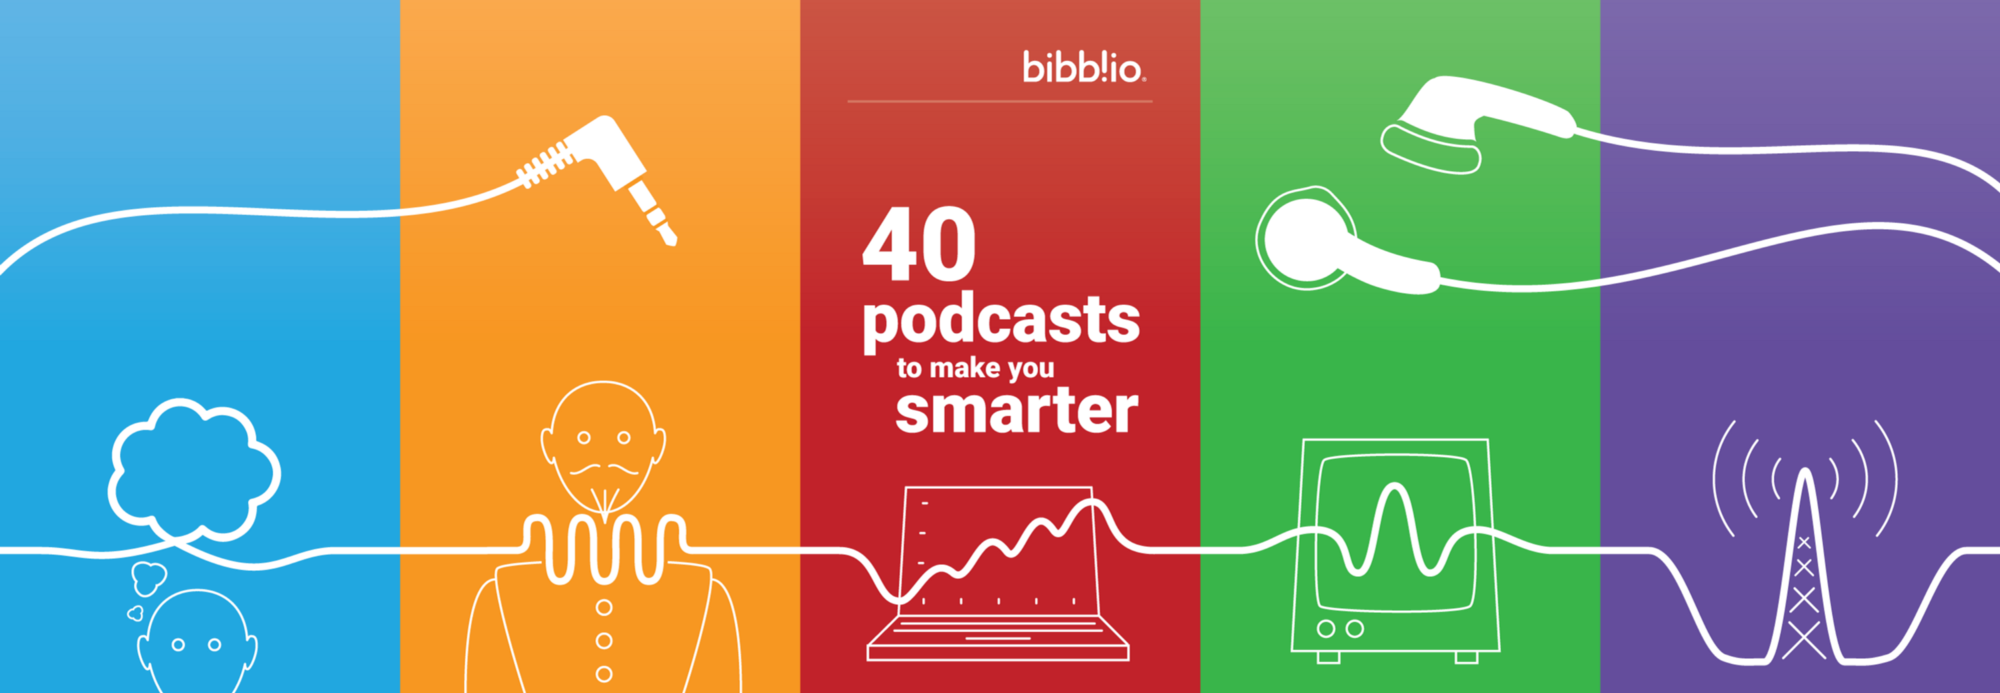 40 podcasts to make you smarter